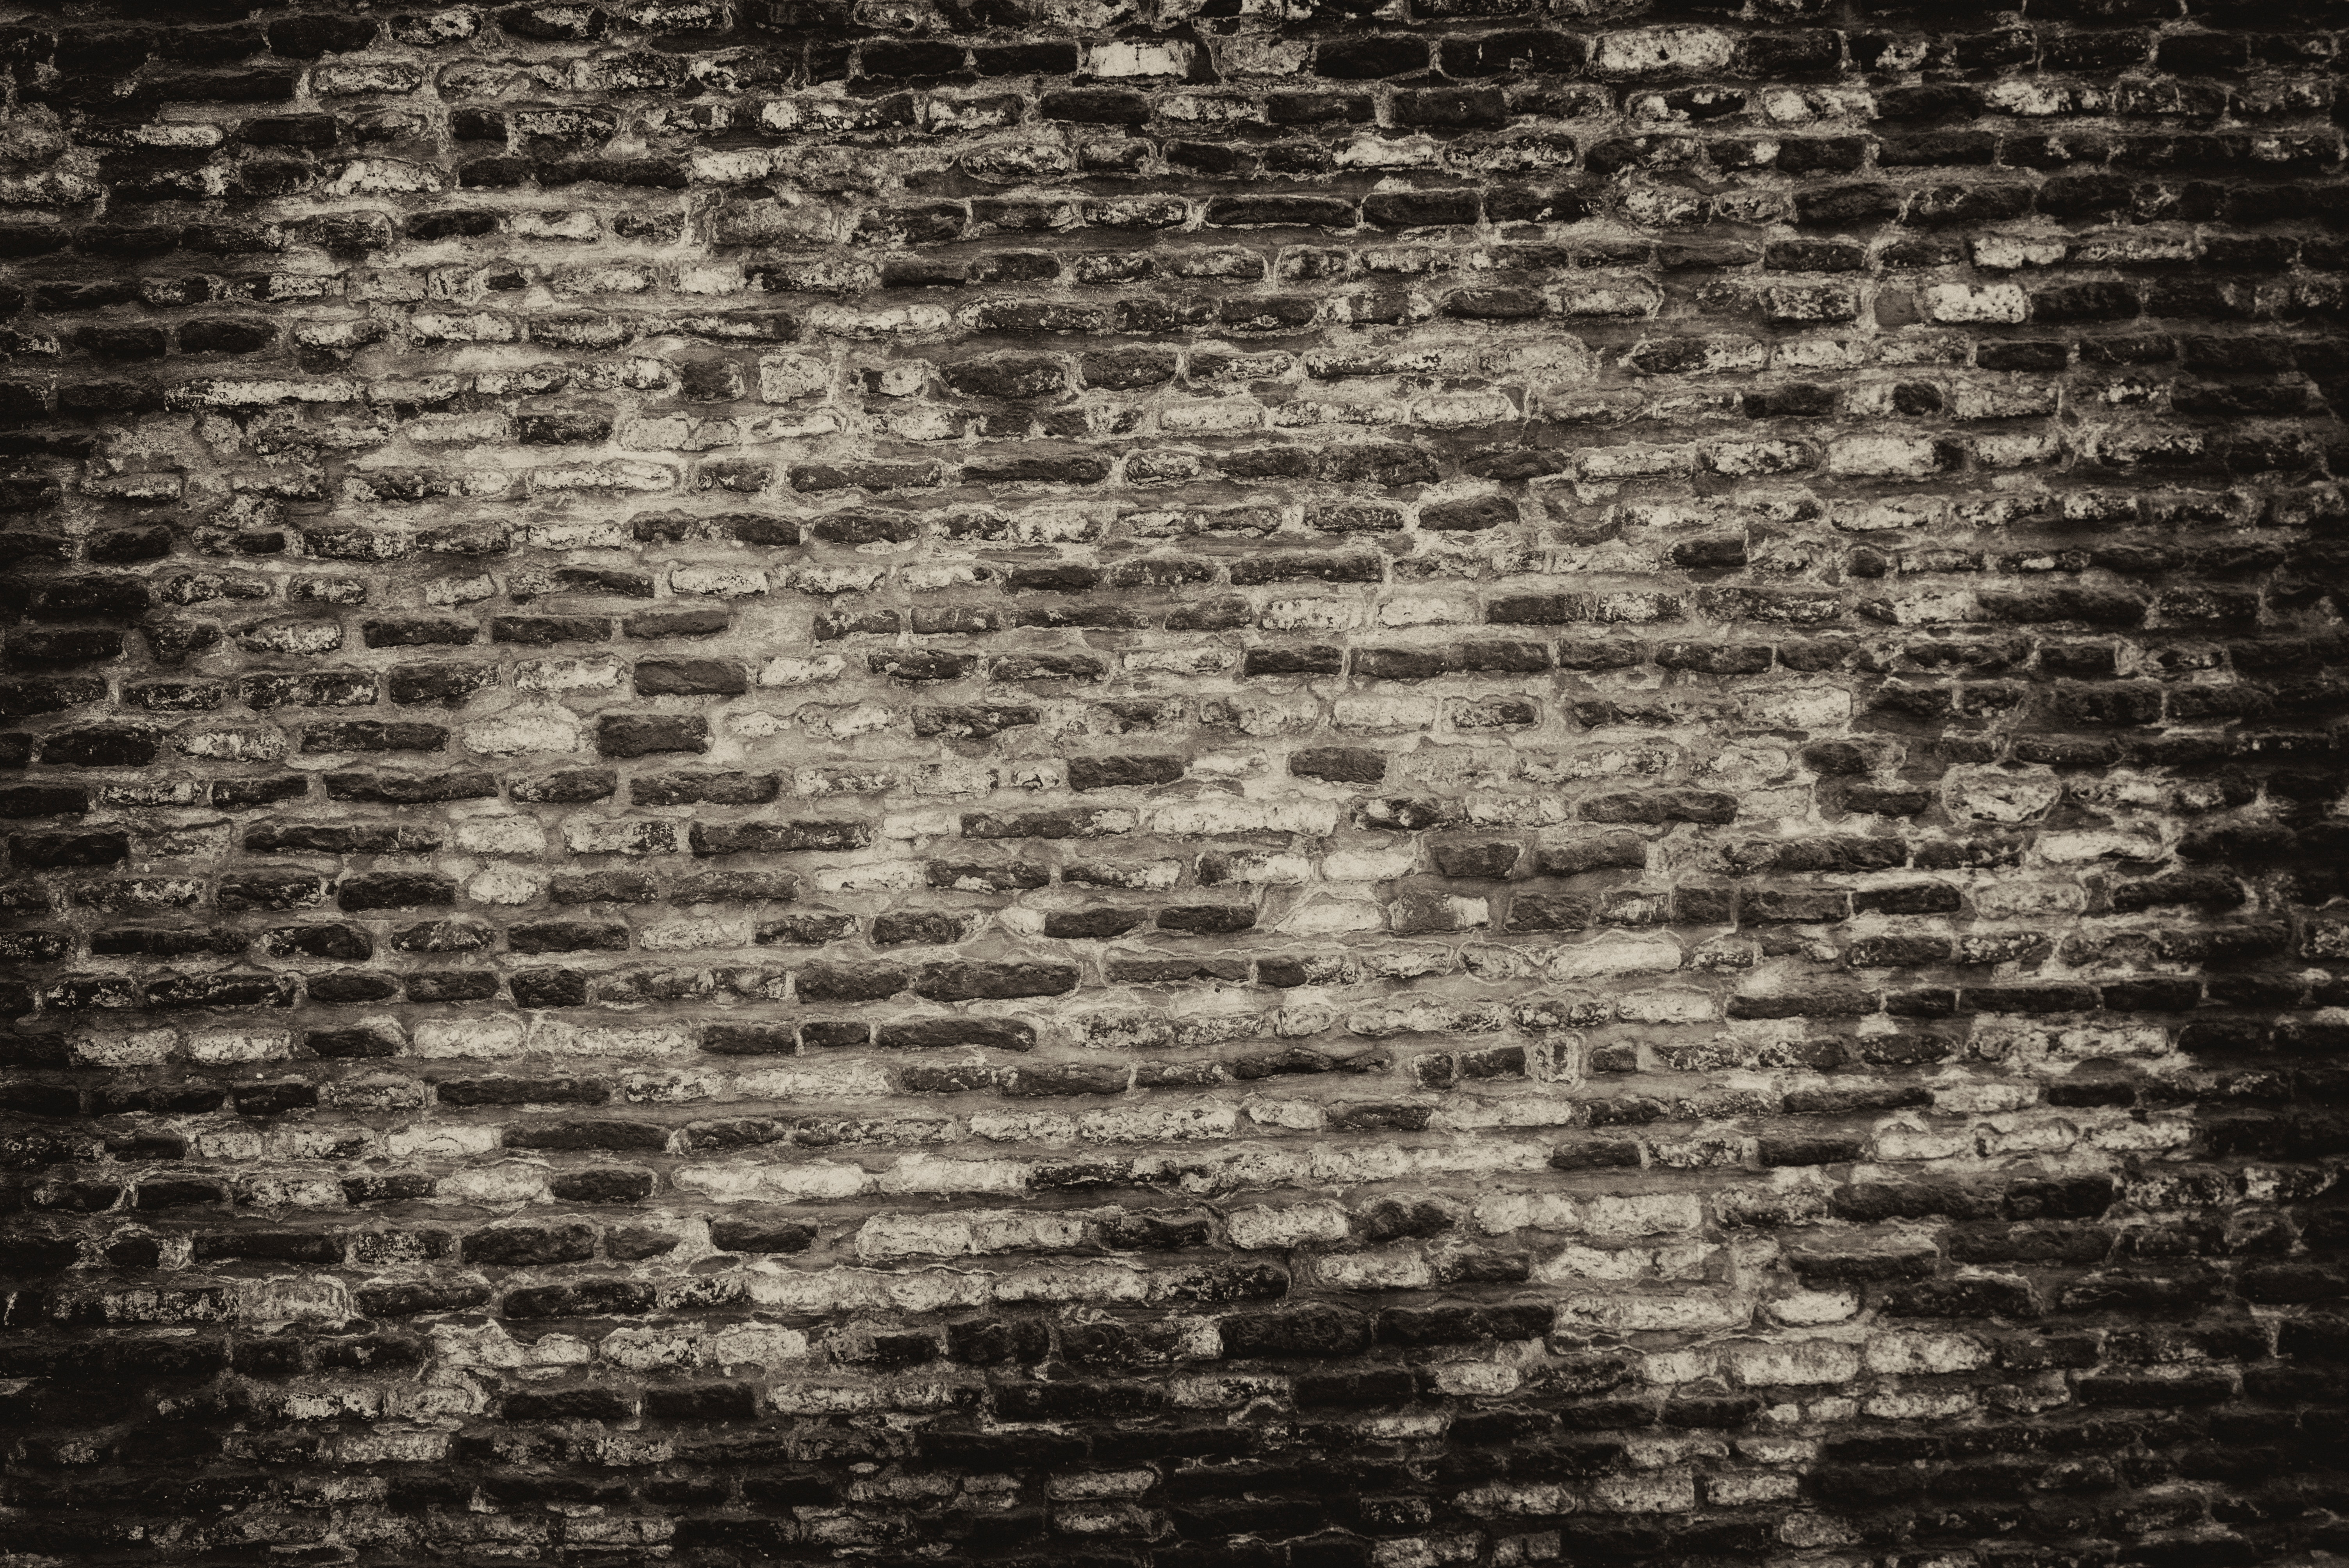 1000+ Interesting Brick Wall Photos · Pexels · Free Stock Photos